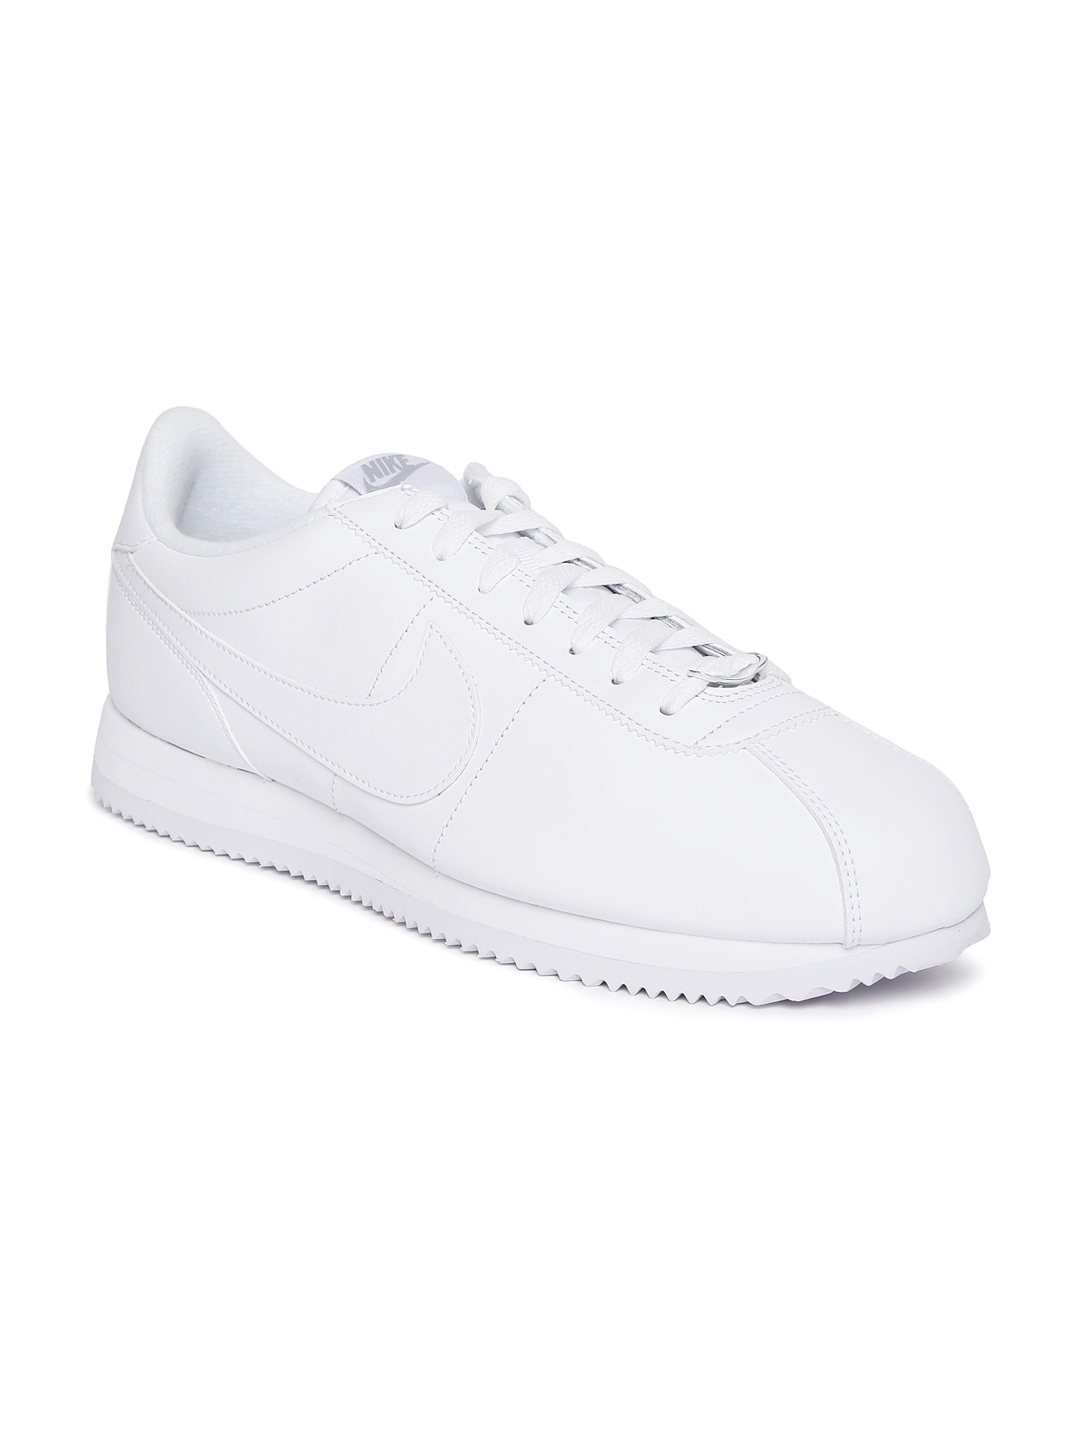 official photos 4cd79 44f31 Nike Men White Cortez Basic Leather Sneakers